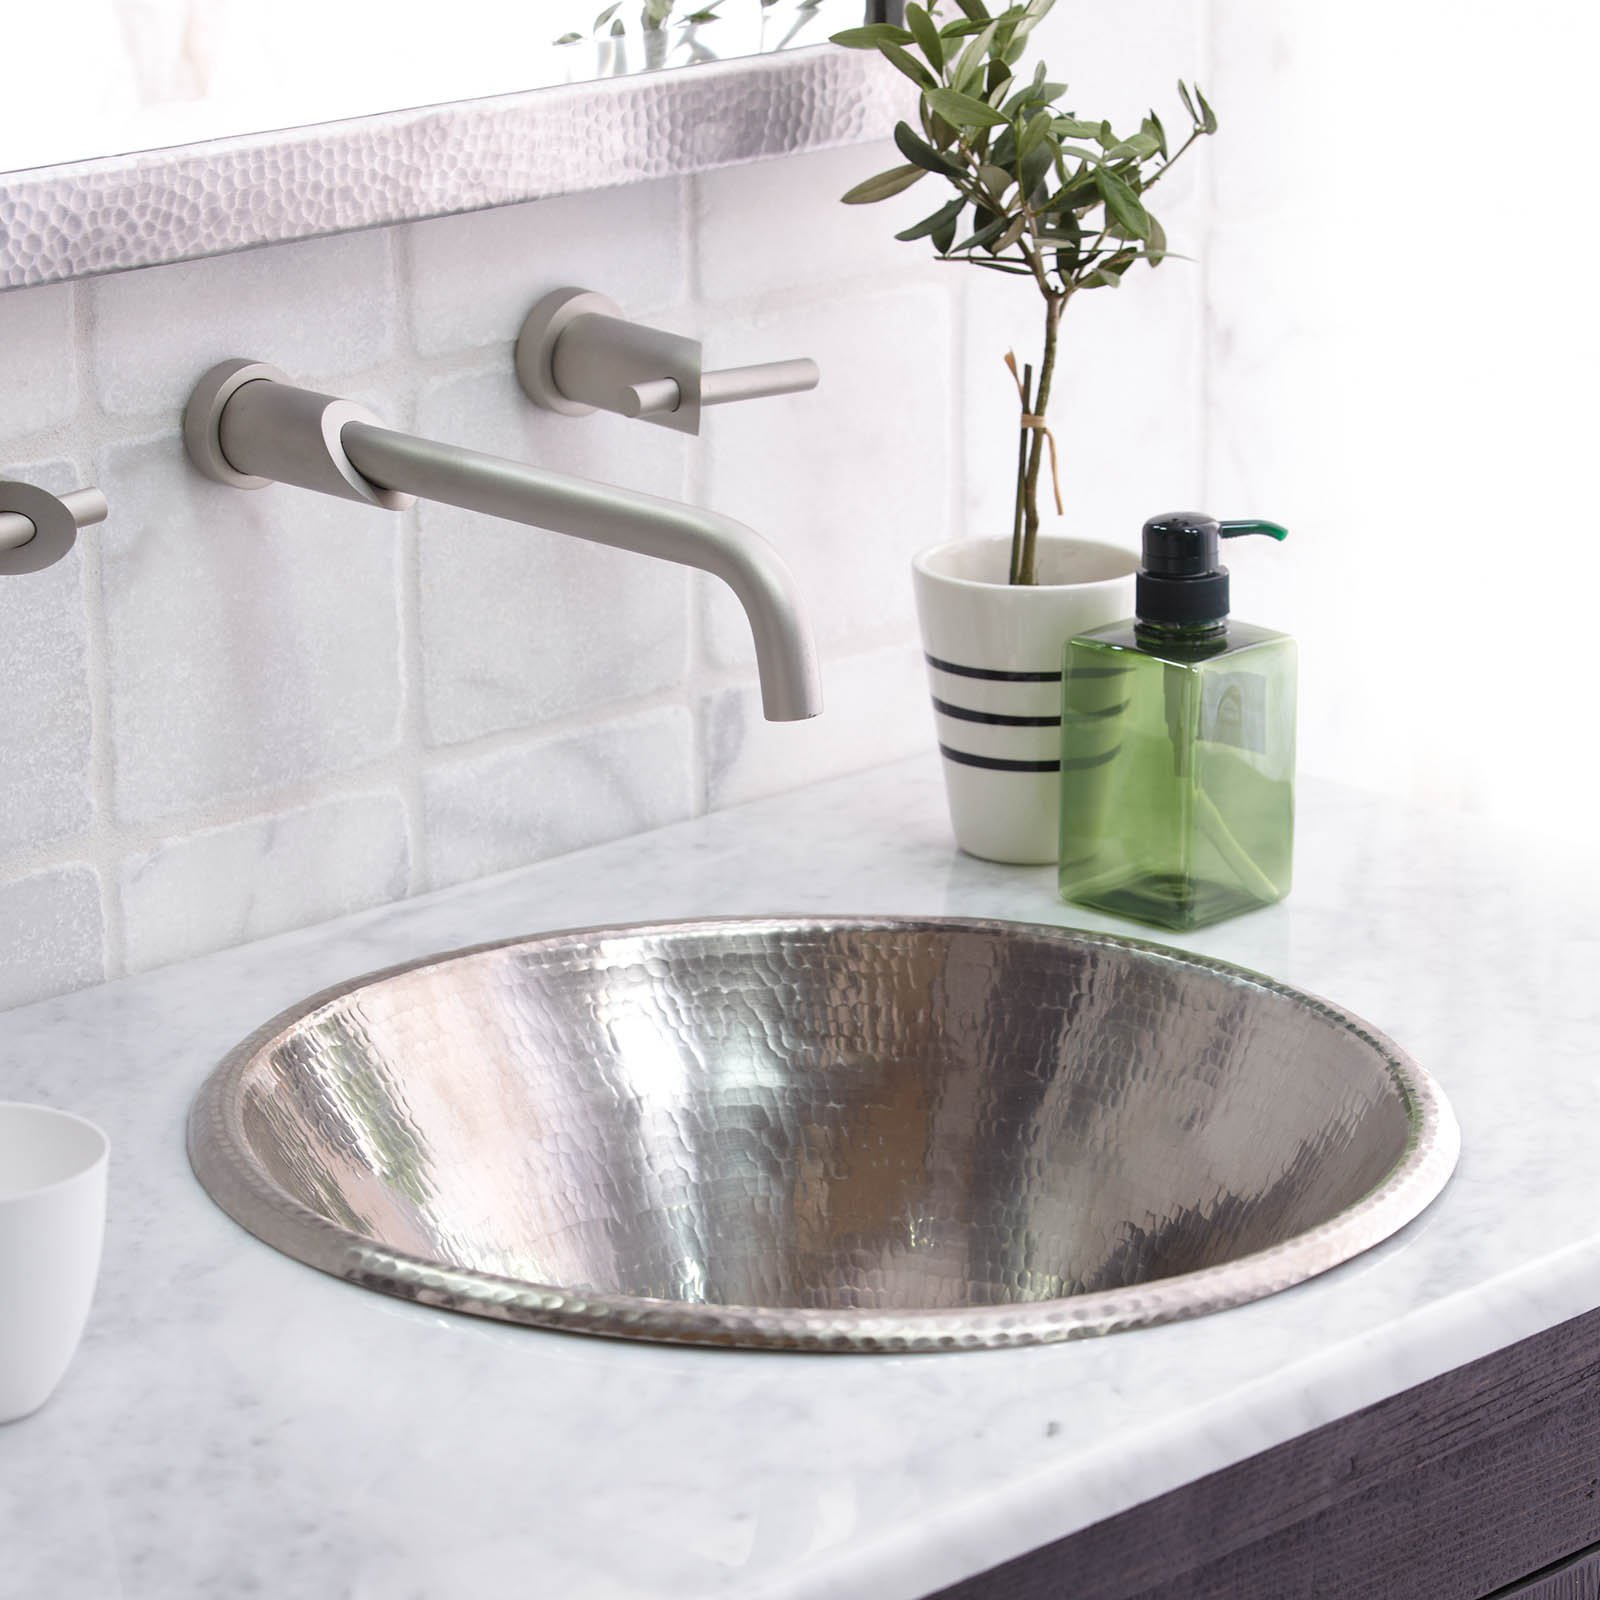 Native Trails CPS Cazo Bathroom Sink